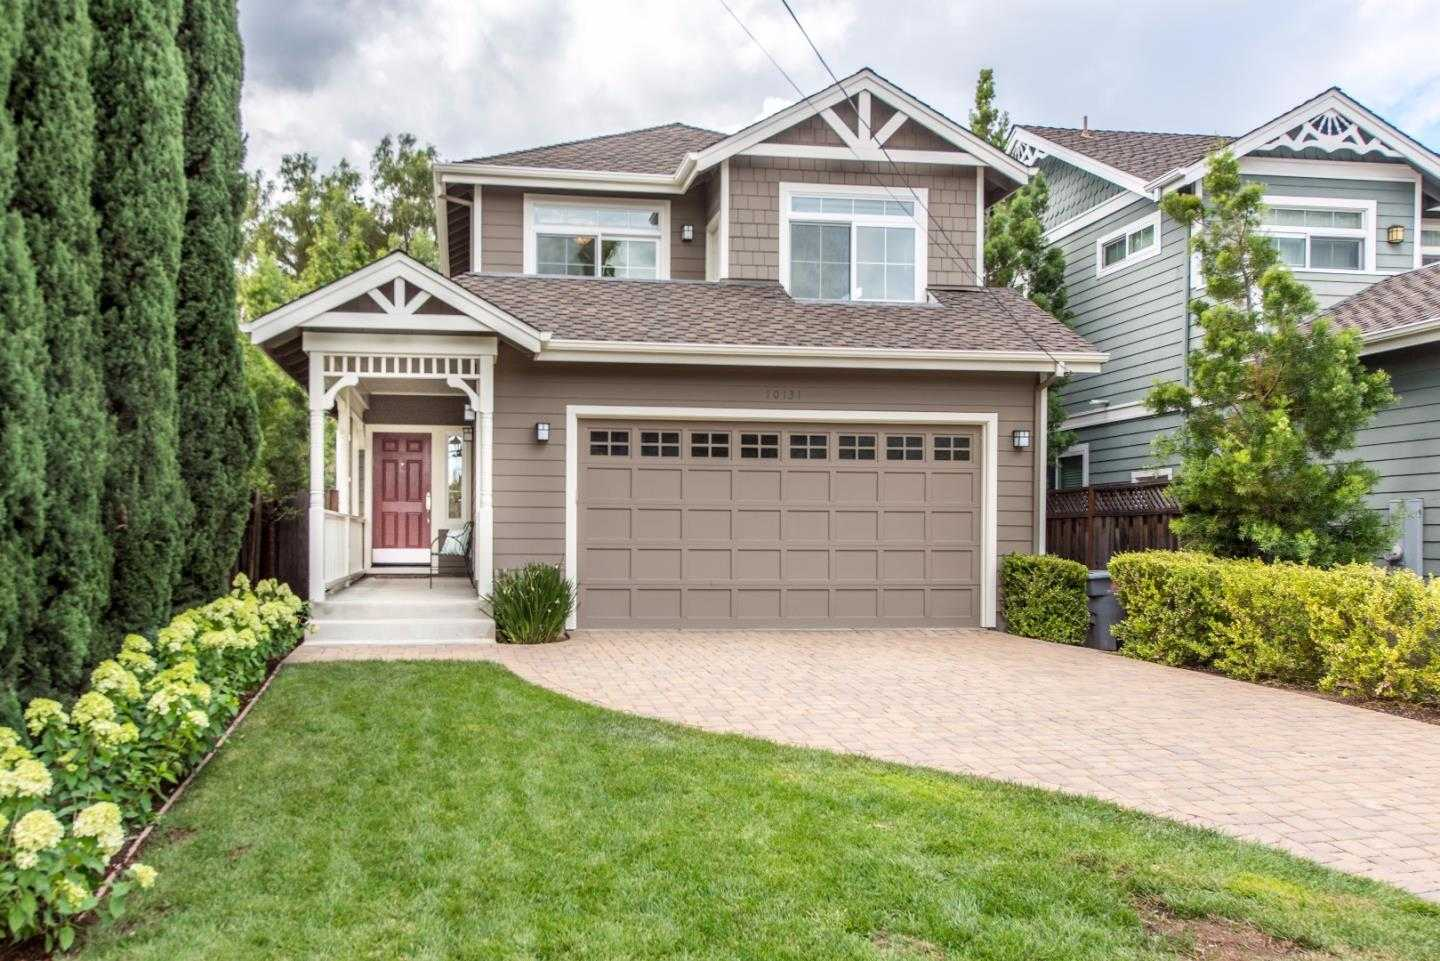 $1,788,000 - 4Br/3Ba -  for Sale in Cupertino